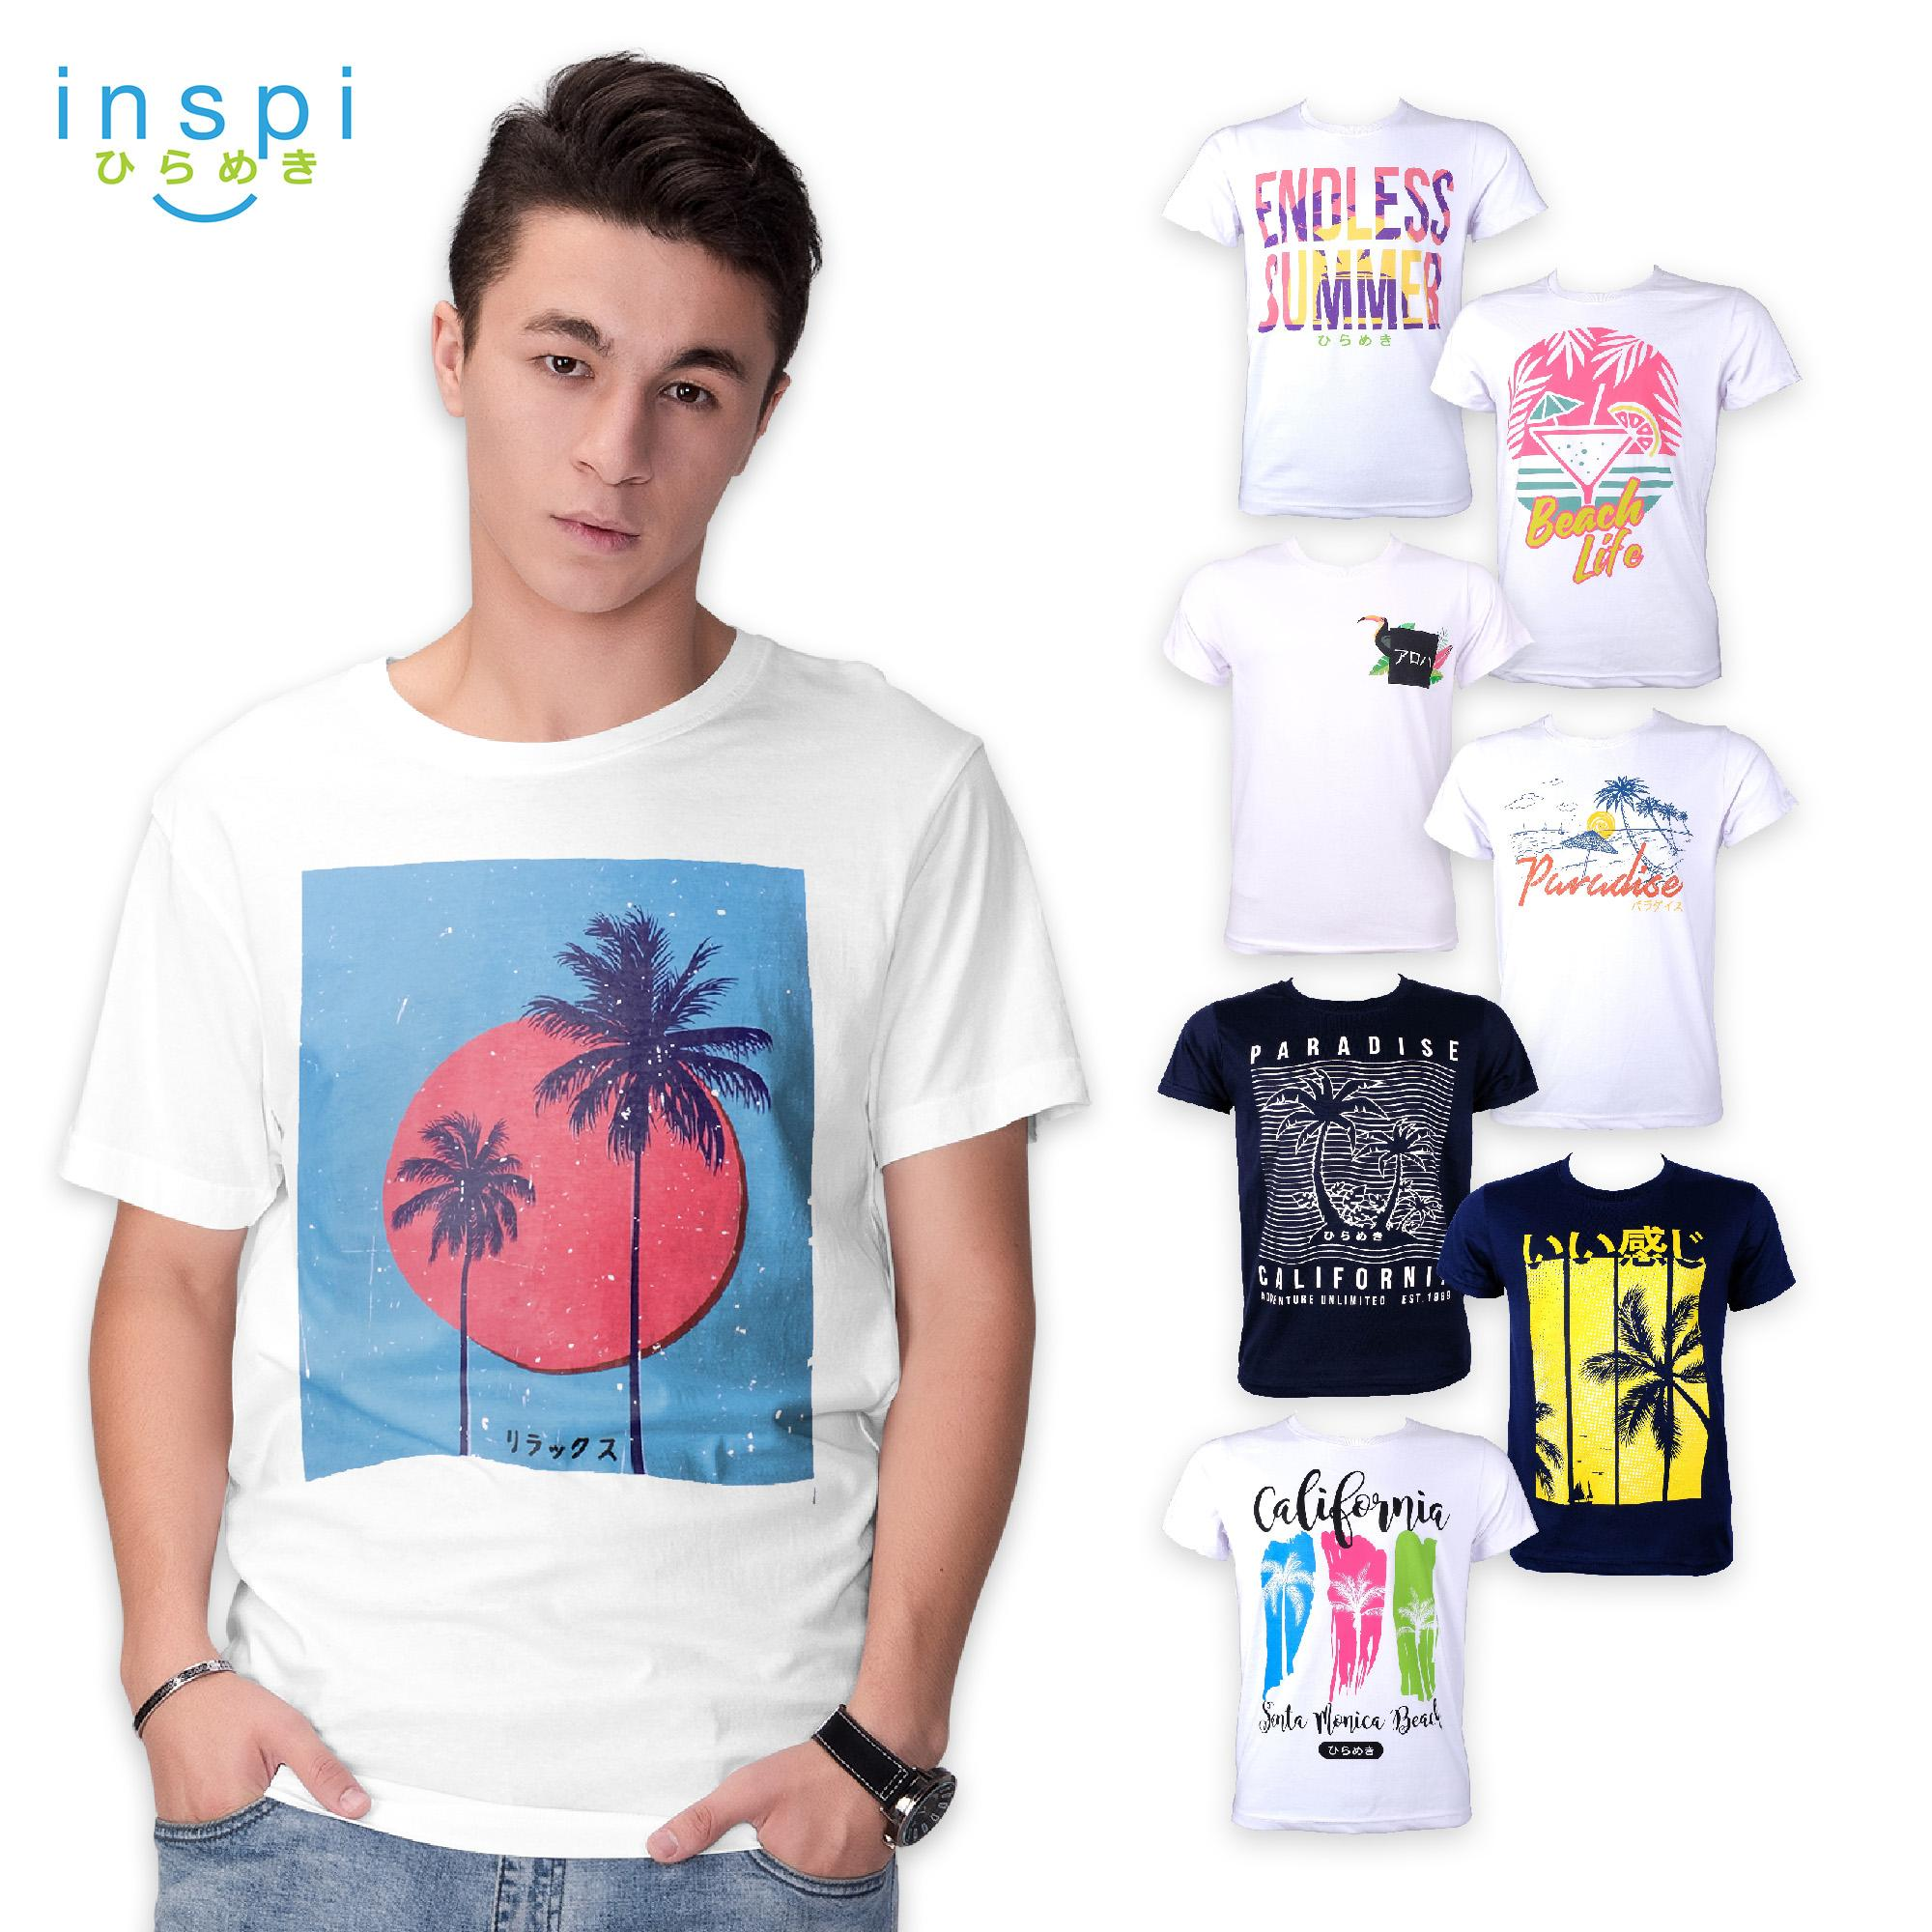 Tops & Tees Russian Car Mens White T Shirts 2019 Short Sleeves Men Blue Tee Shirt Uniform Mens T Shirts No Wadding Fixing Prices According To Quality Of Products